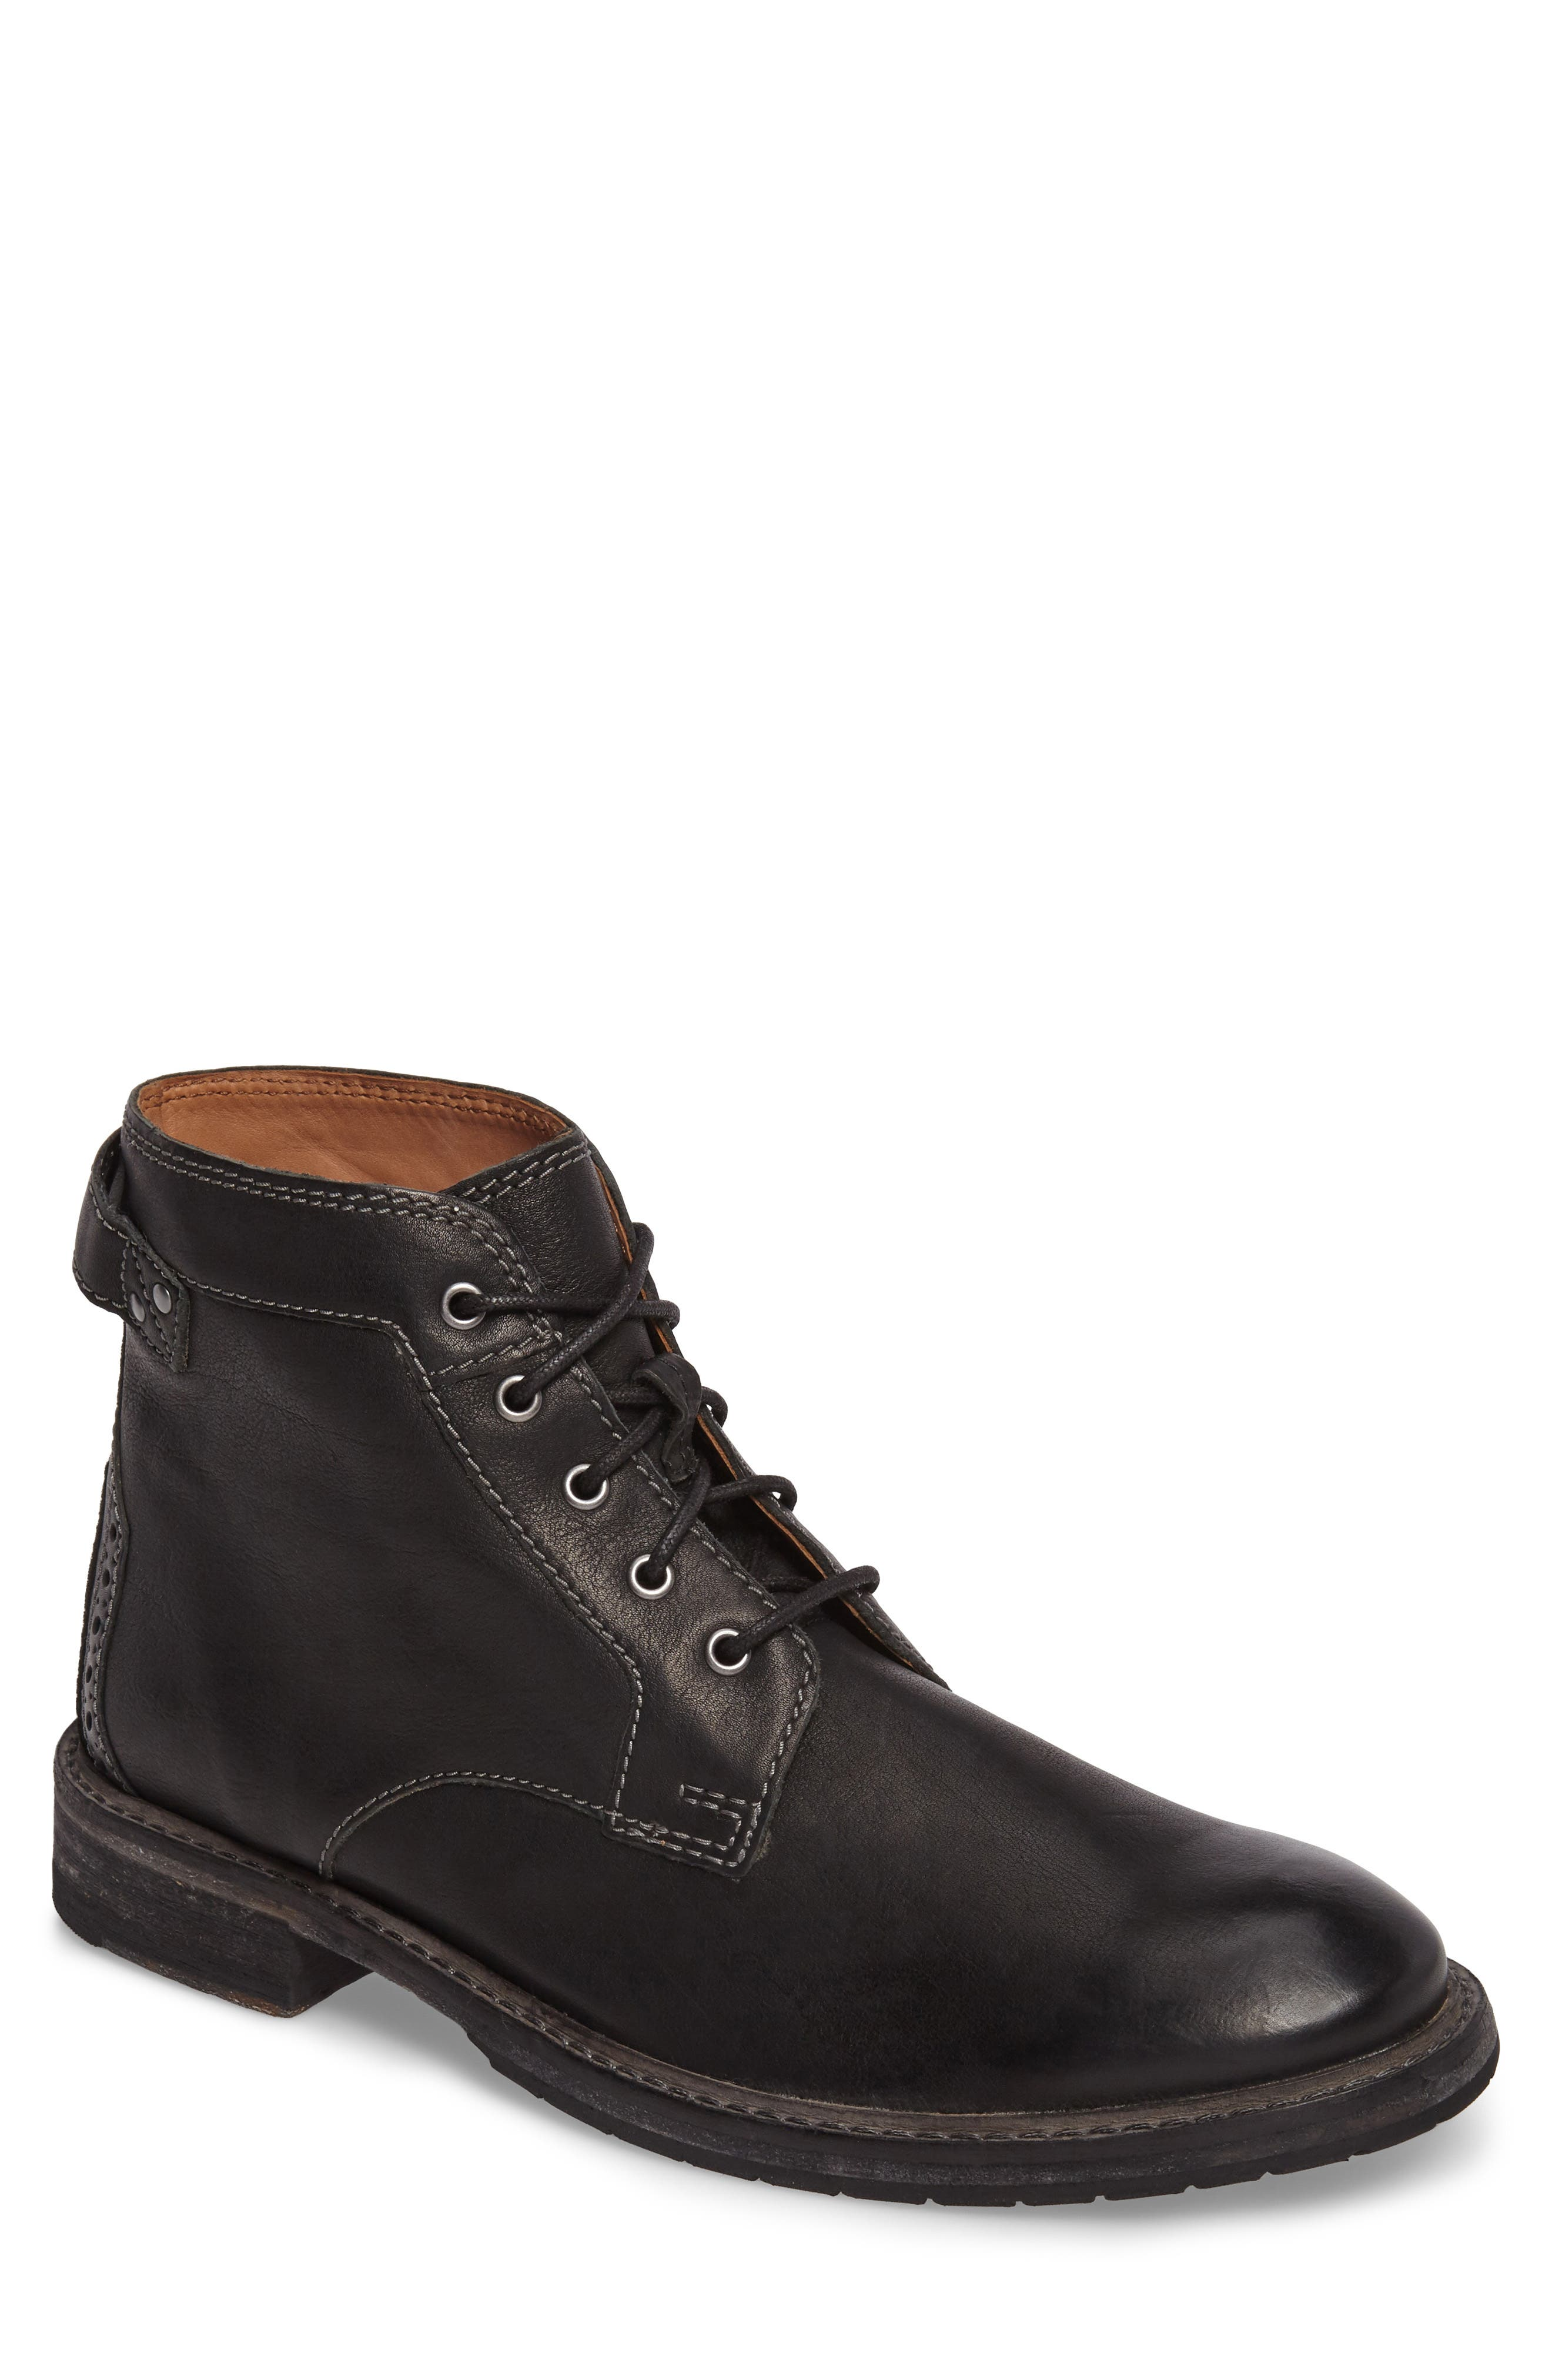 Alternate Image 1 Selected - Clarks® Clarkdale Plain Toe Boot (Men)